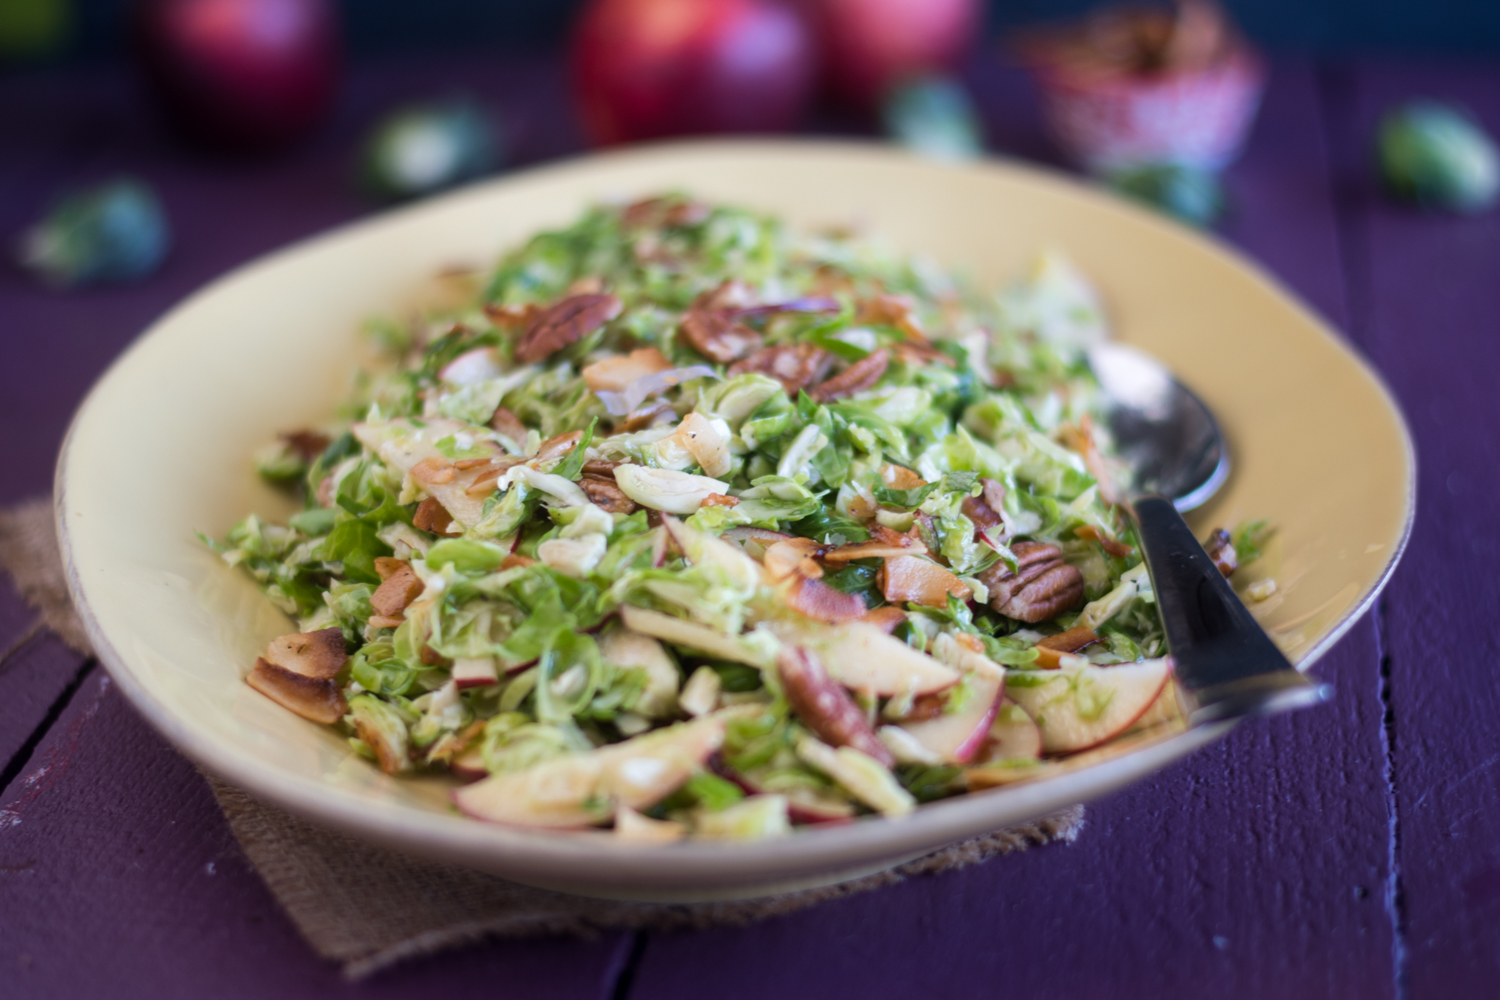 Brussel Sprout Apple Salad with coconut bacon is perfect for fall. The coconut bacon really takes this salad to the next level!